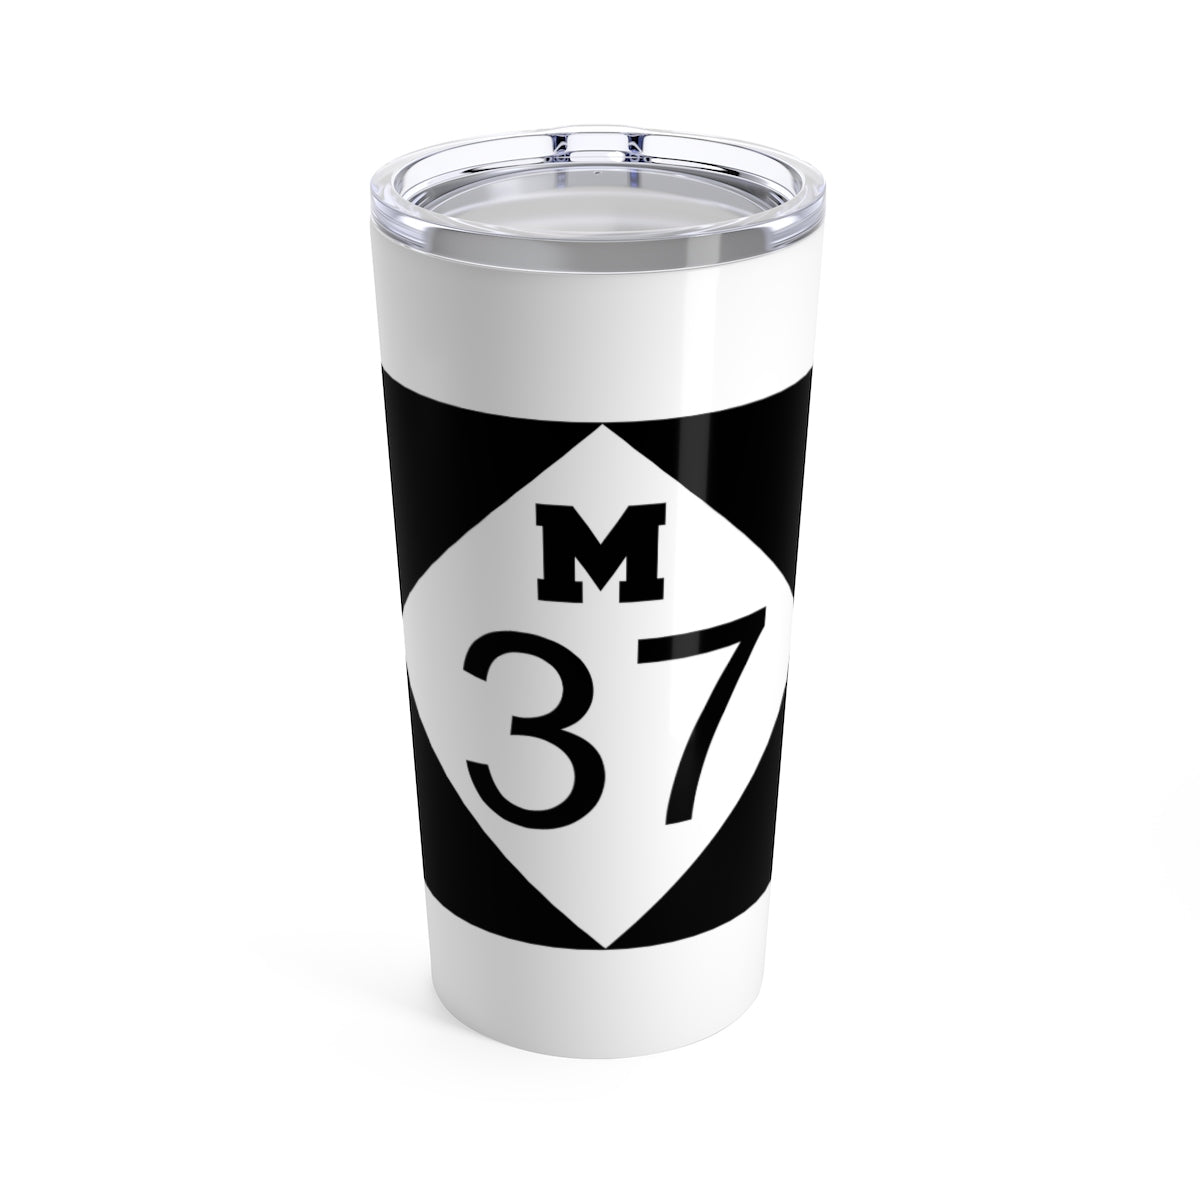 M37 White Stainless Steel Tumbler - 20 oz.